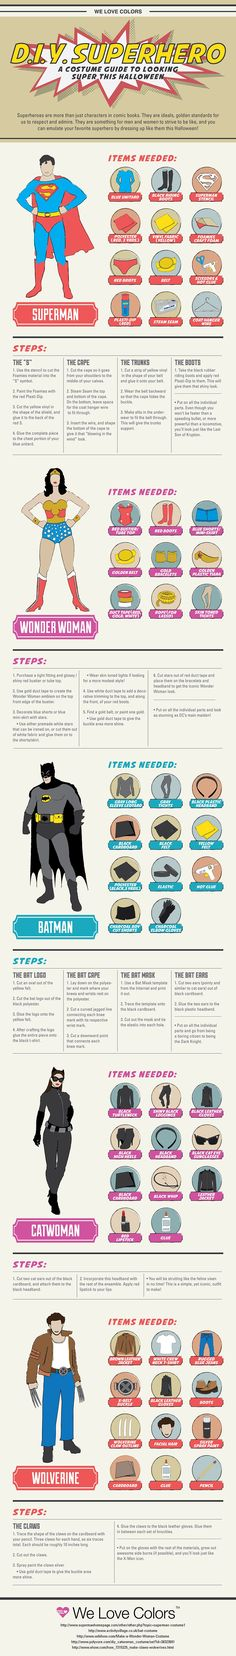 Prepare for Halloween With These DIY Superhero Costumes   image